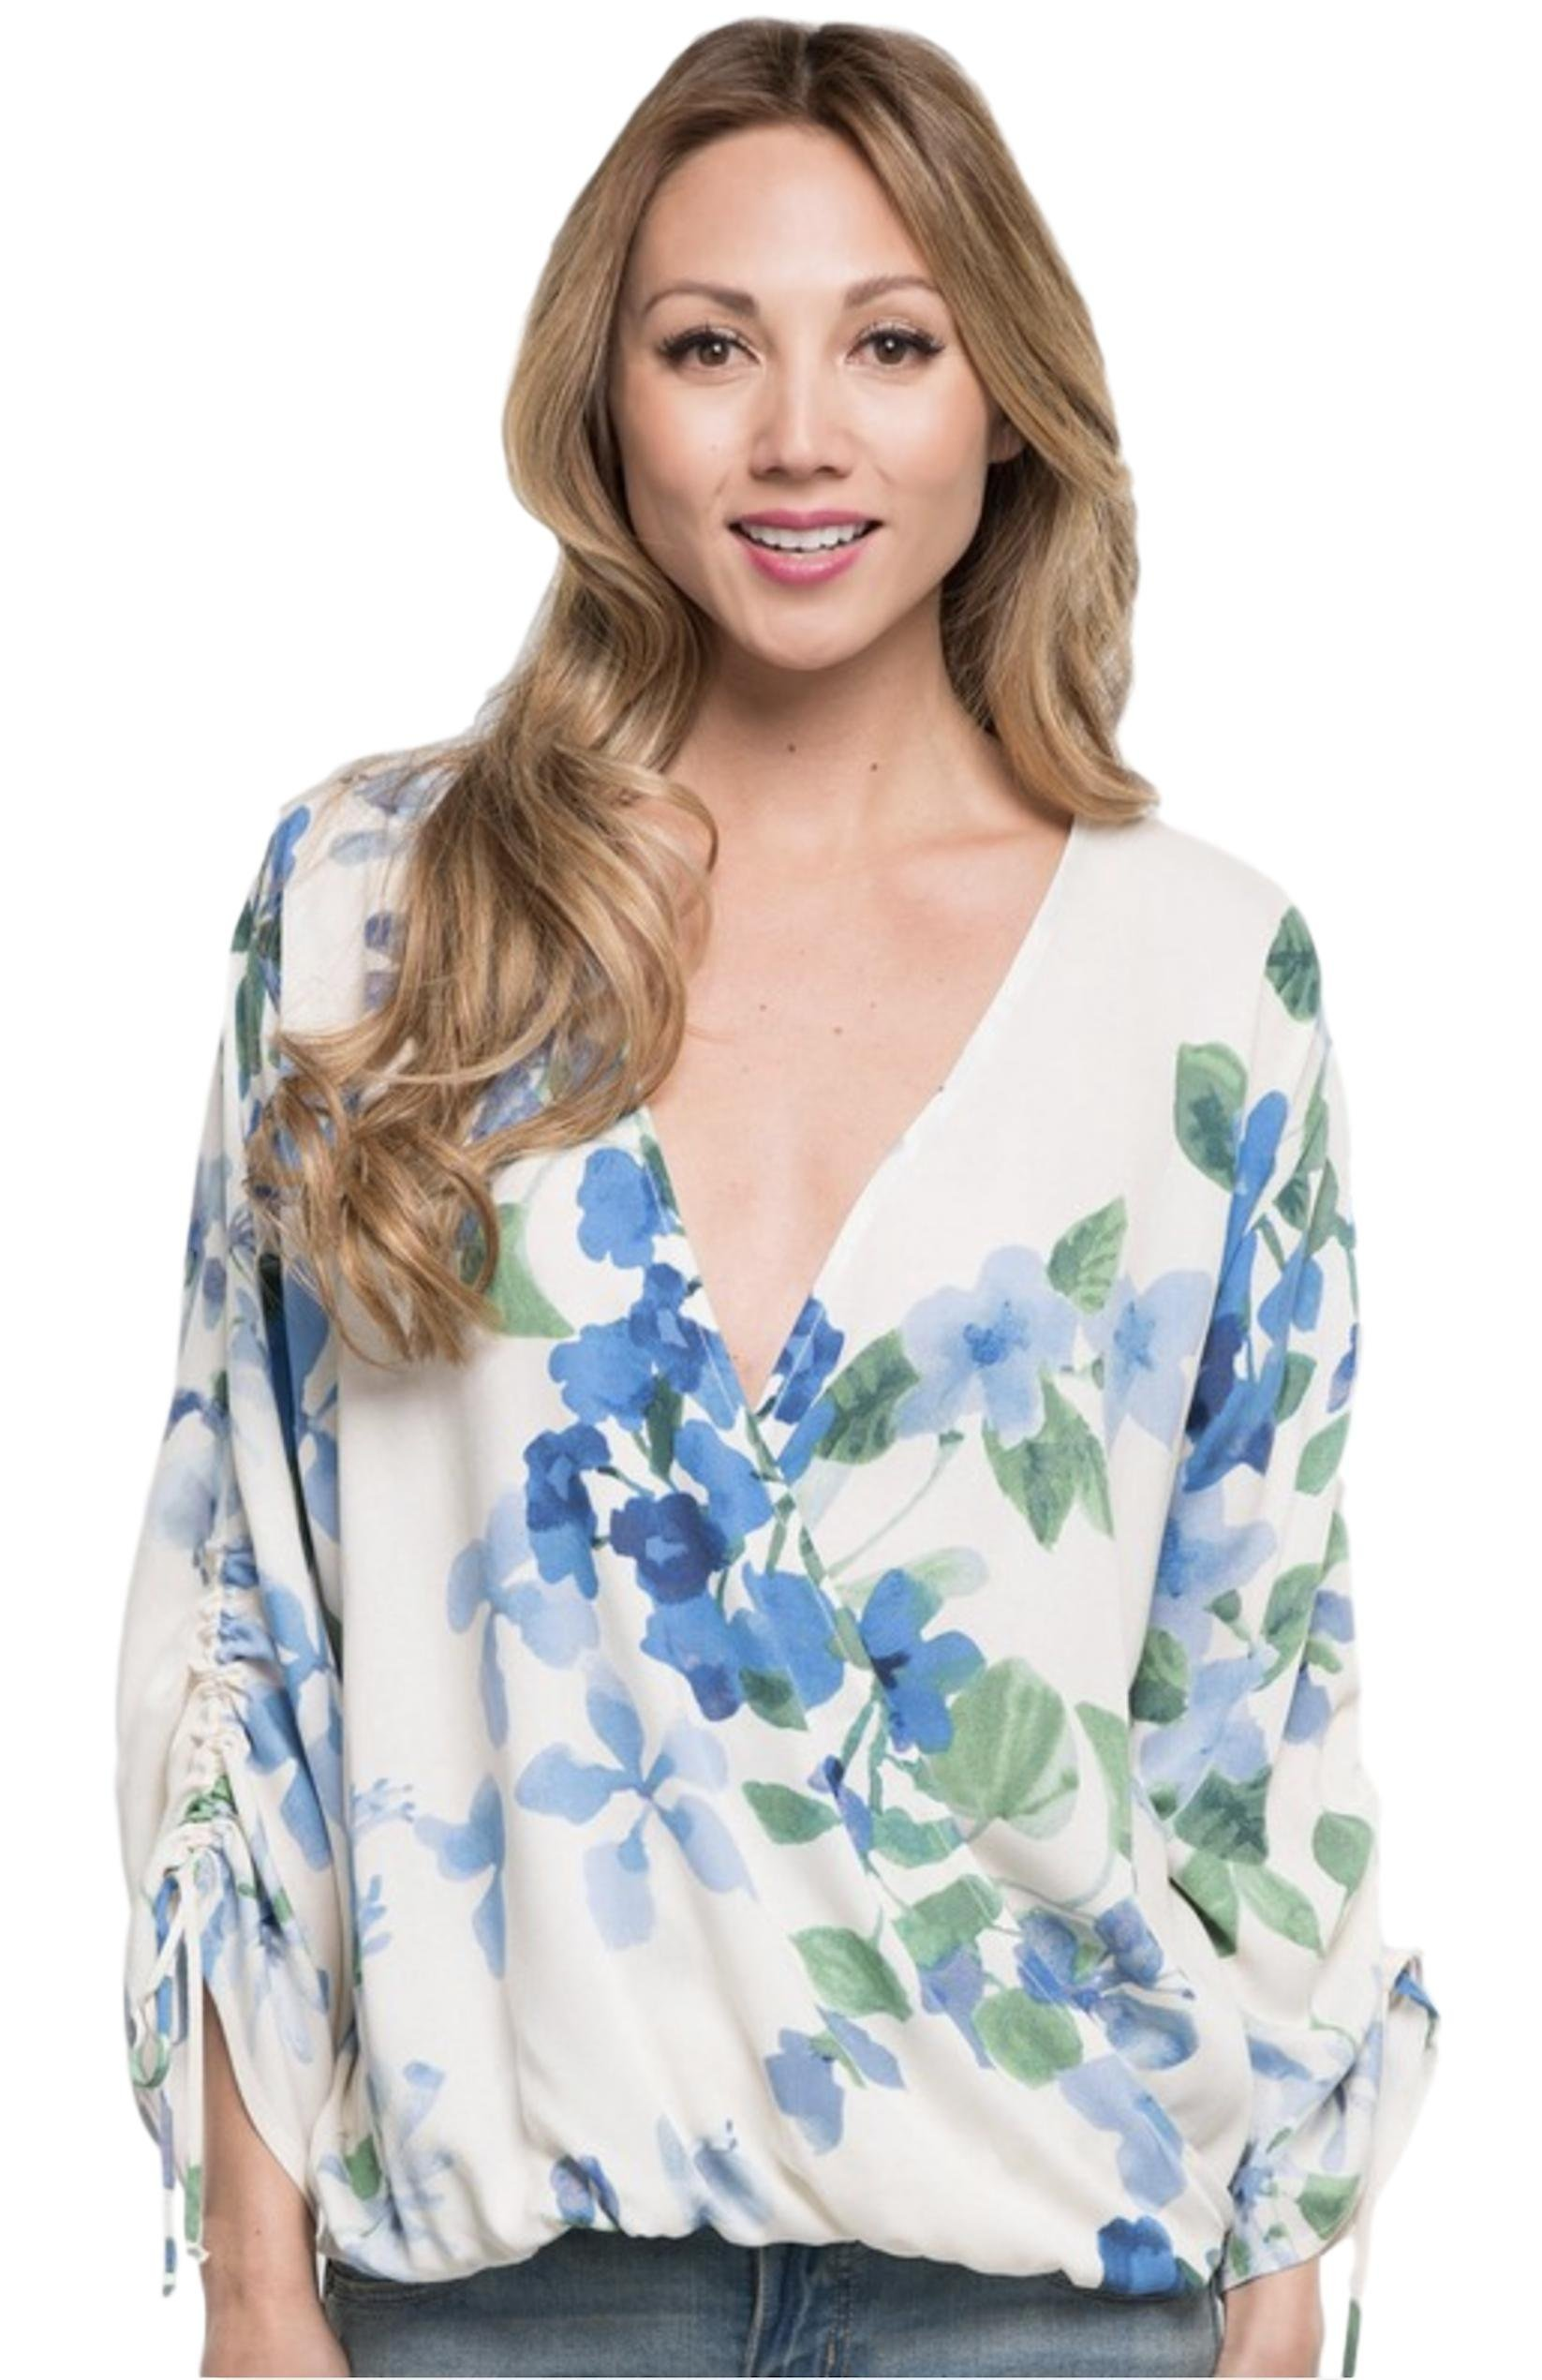 Love Stitch Women's Watercolor Floral Printed Surplice Top with Shirred Tie Sleeves (Navy/Light Blue, Large)